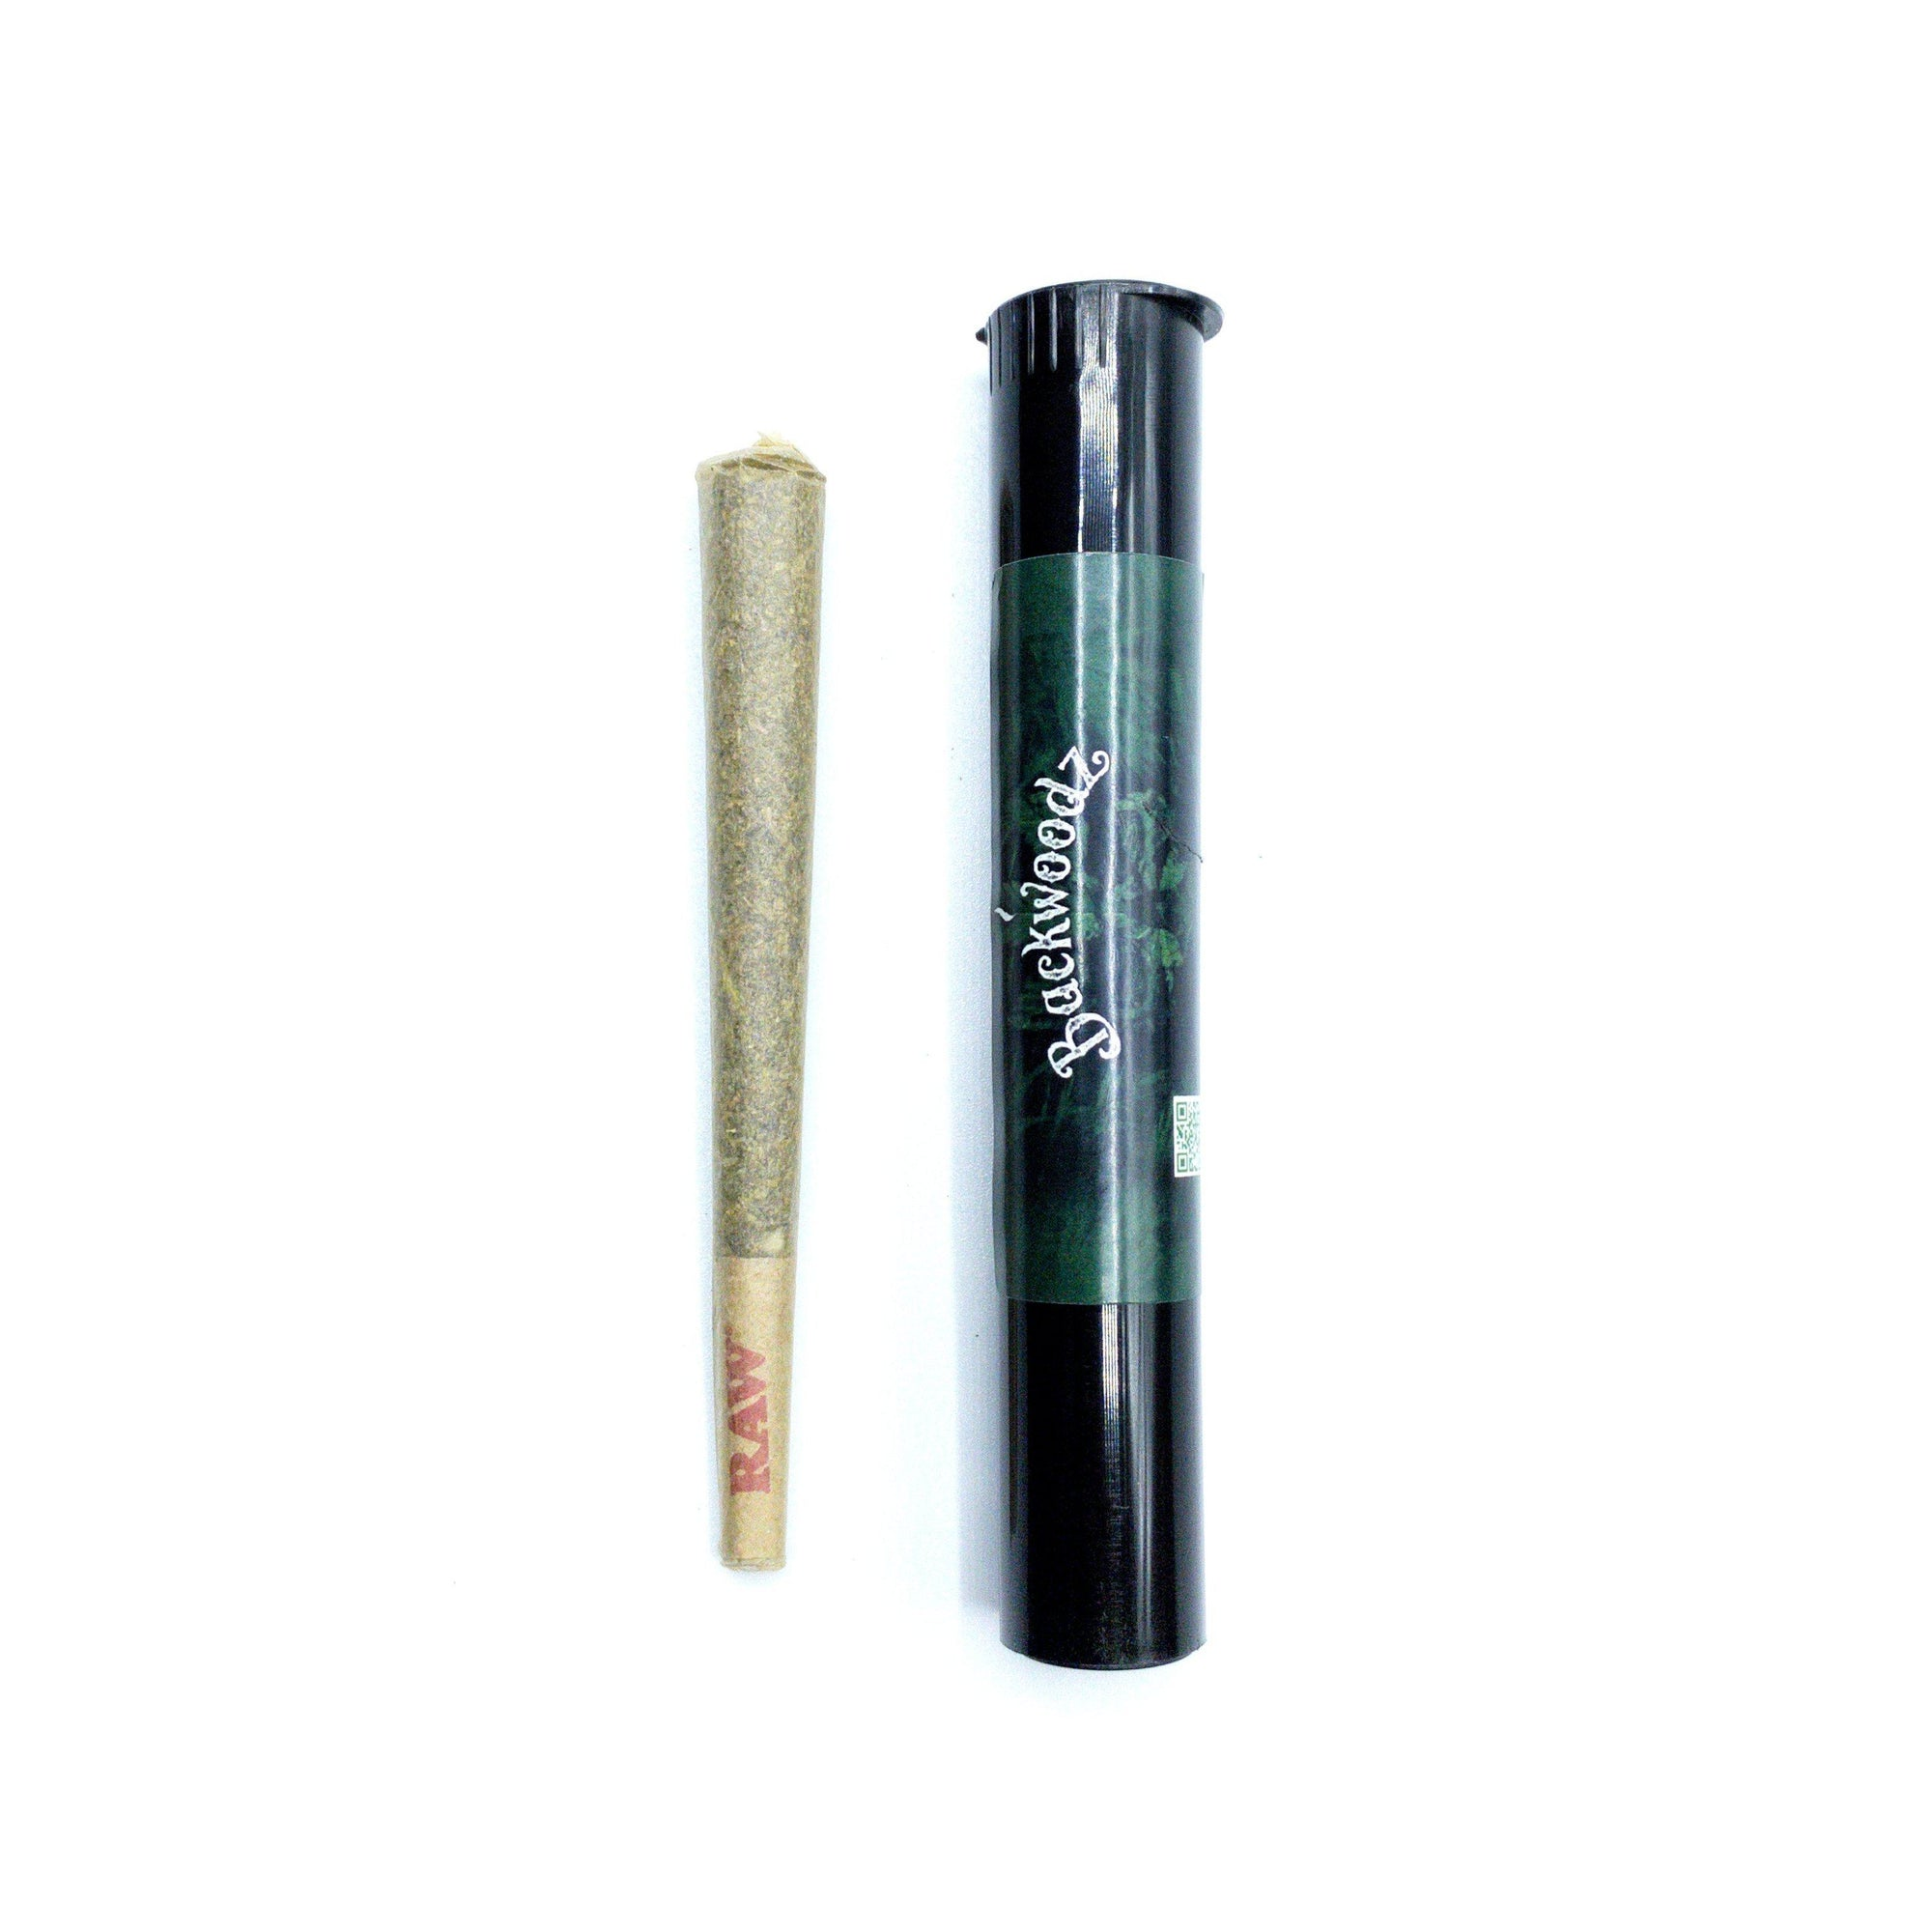 CBG Hemp Flower PreRolls - BackWoodz CBD